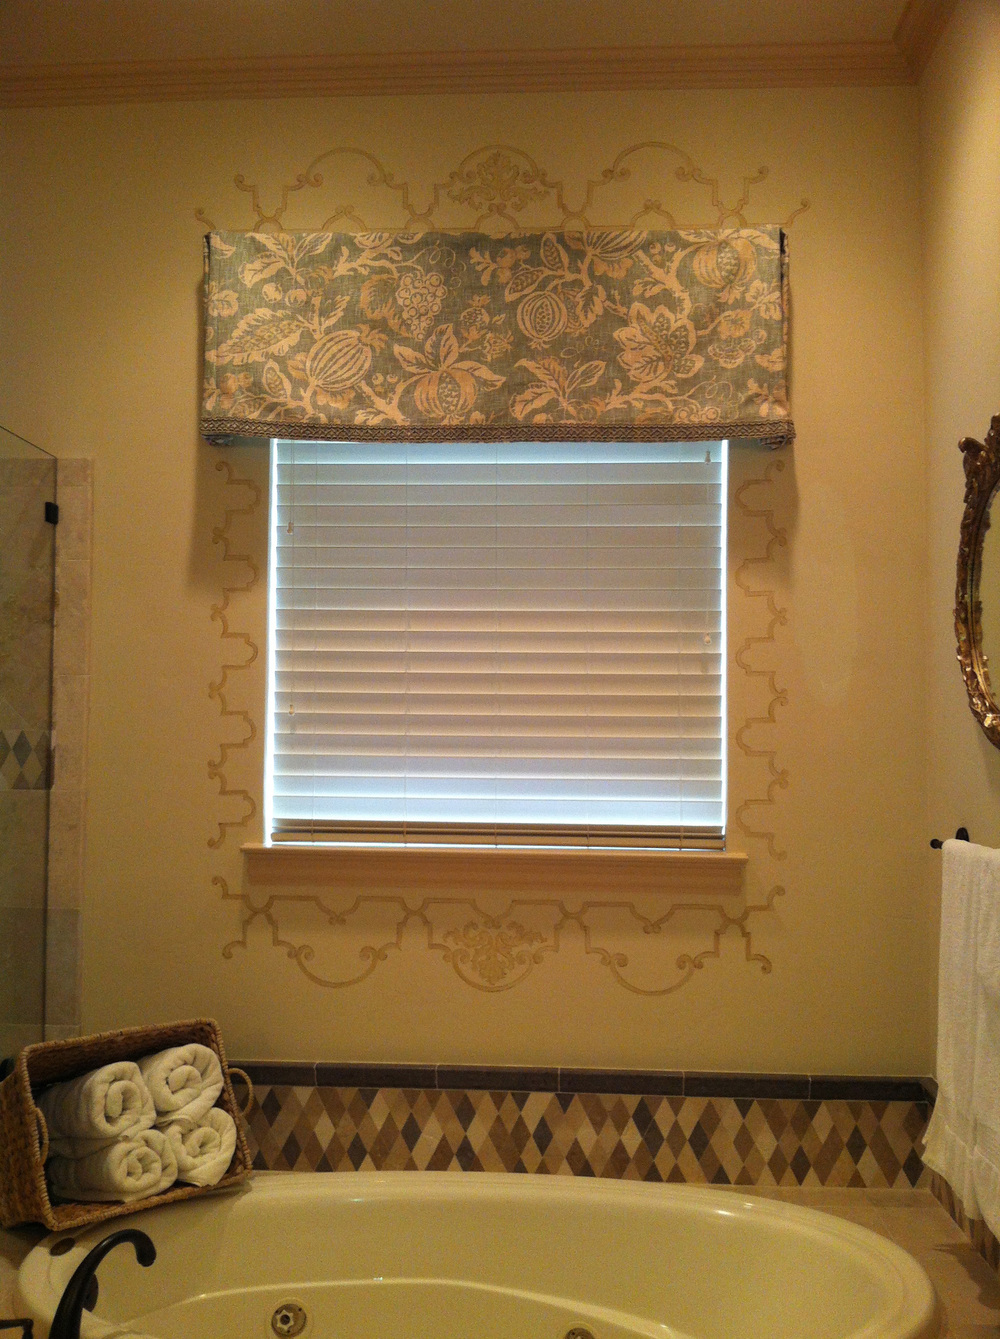 Custom designed pattern for bathroom window